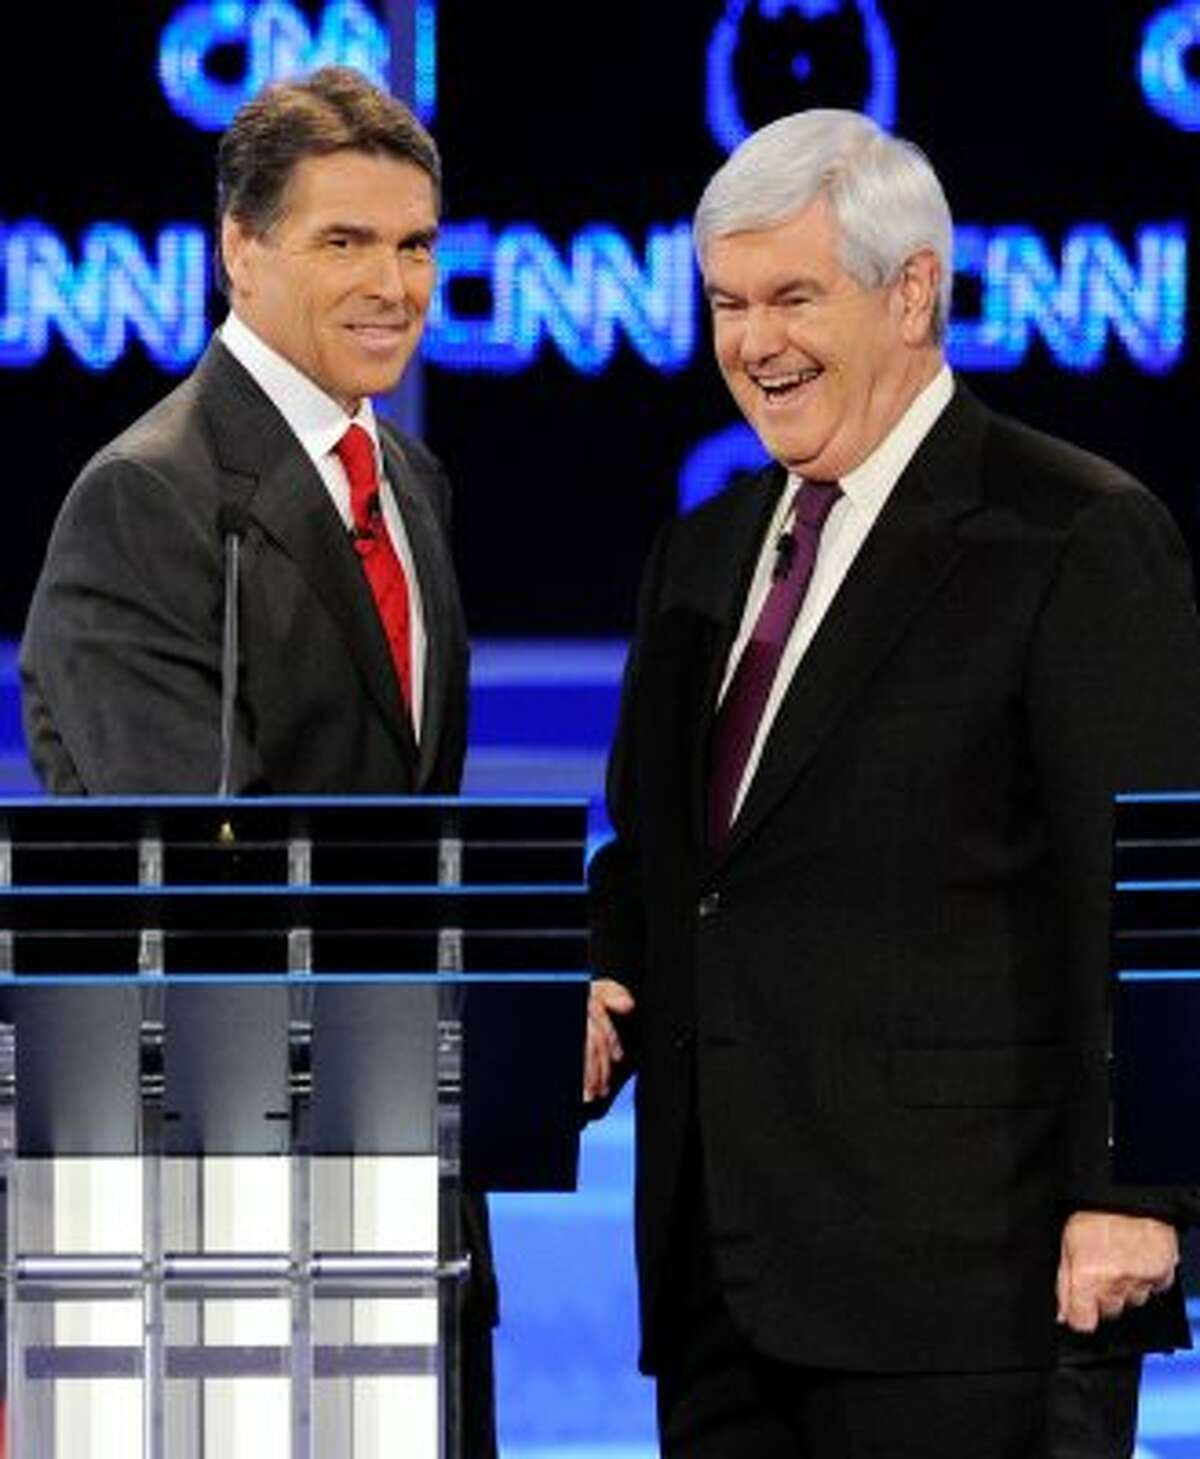 Rick Perry and former Speaker of the House Newt Gingrich shake hands after the Republican presidential debate airing on CNN, October 18, 2011 in Las Vegas. (Ethan Miller / Getty)